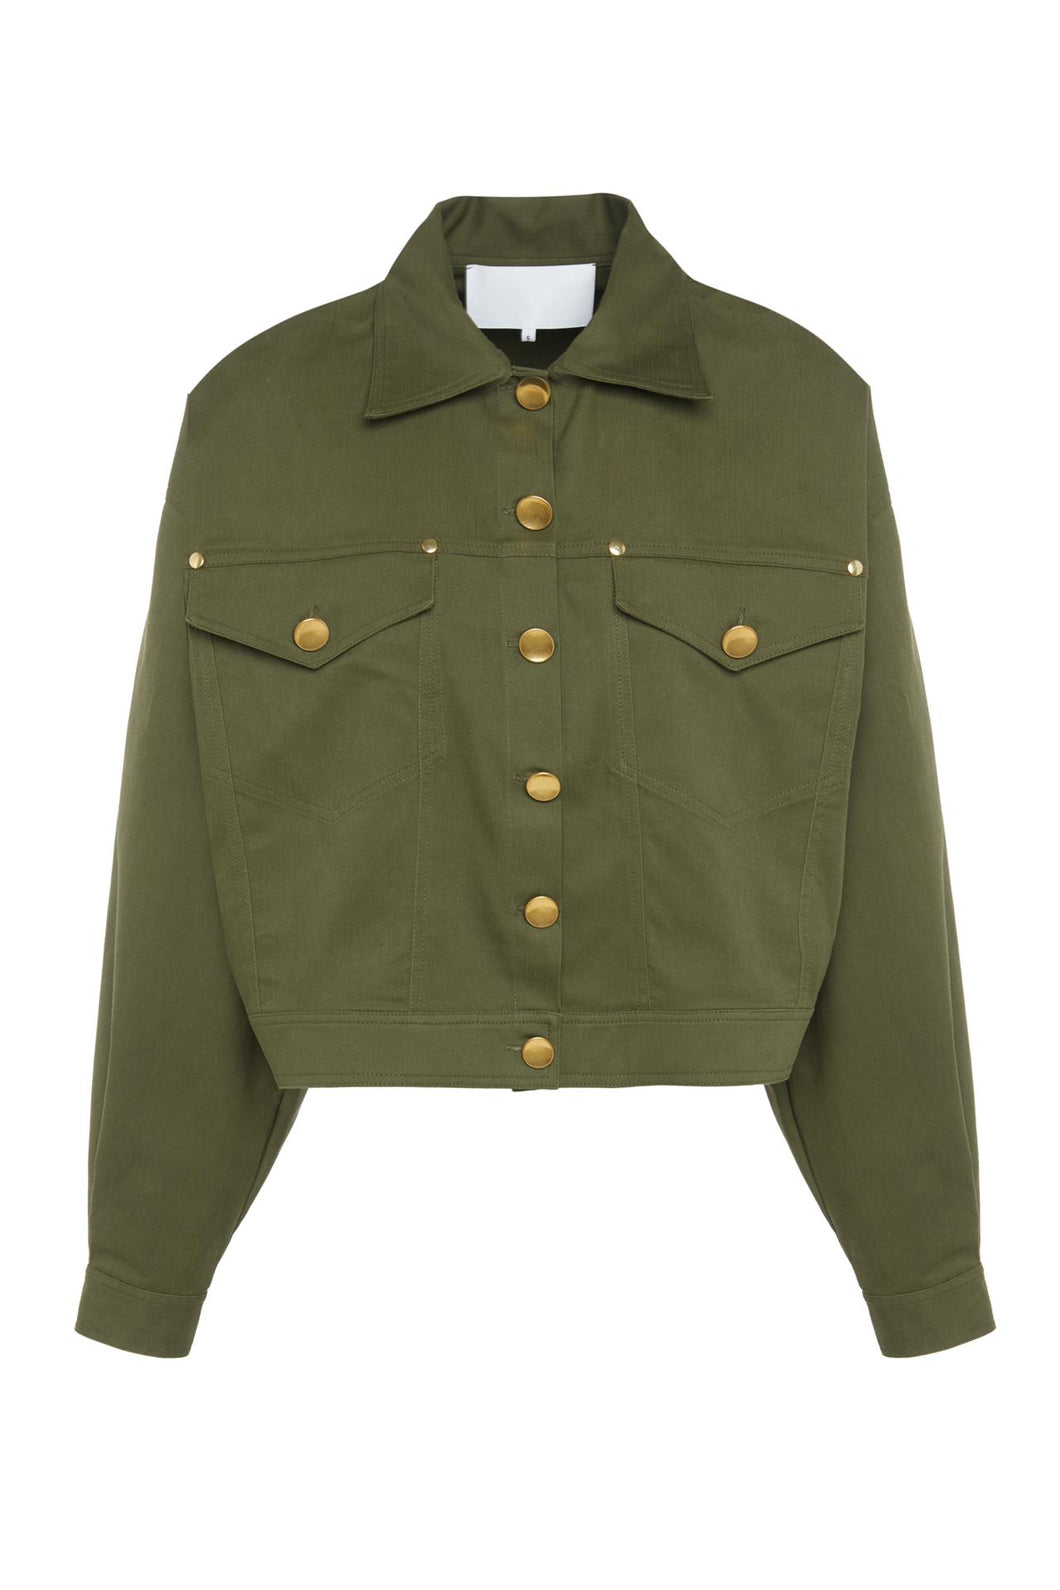 Green Trucker Jacket